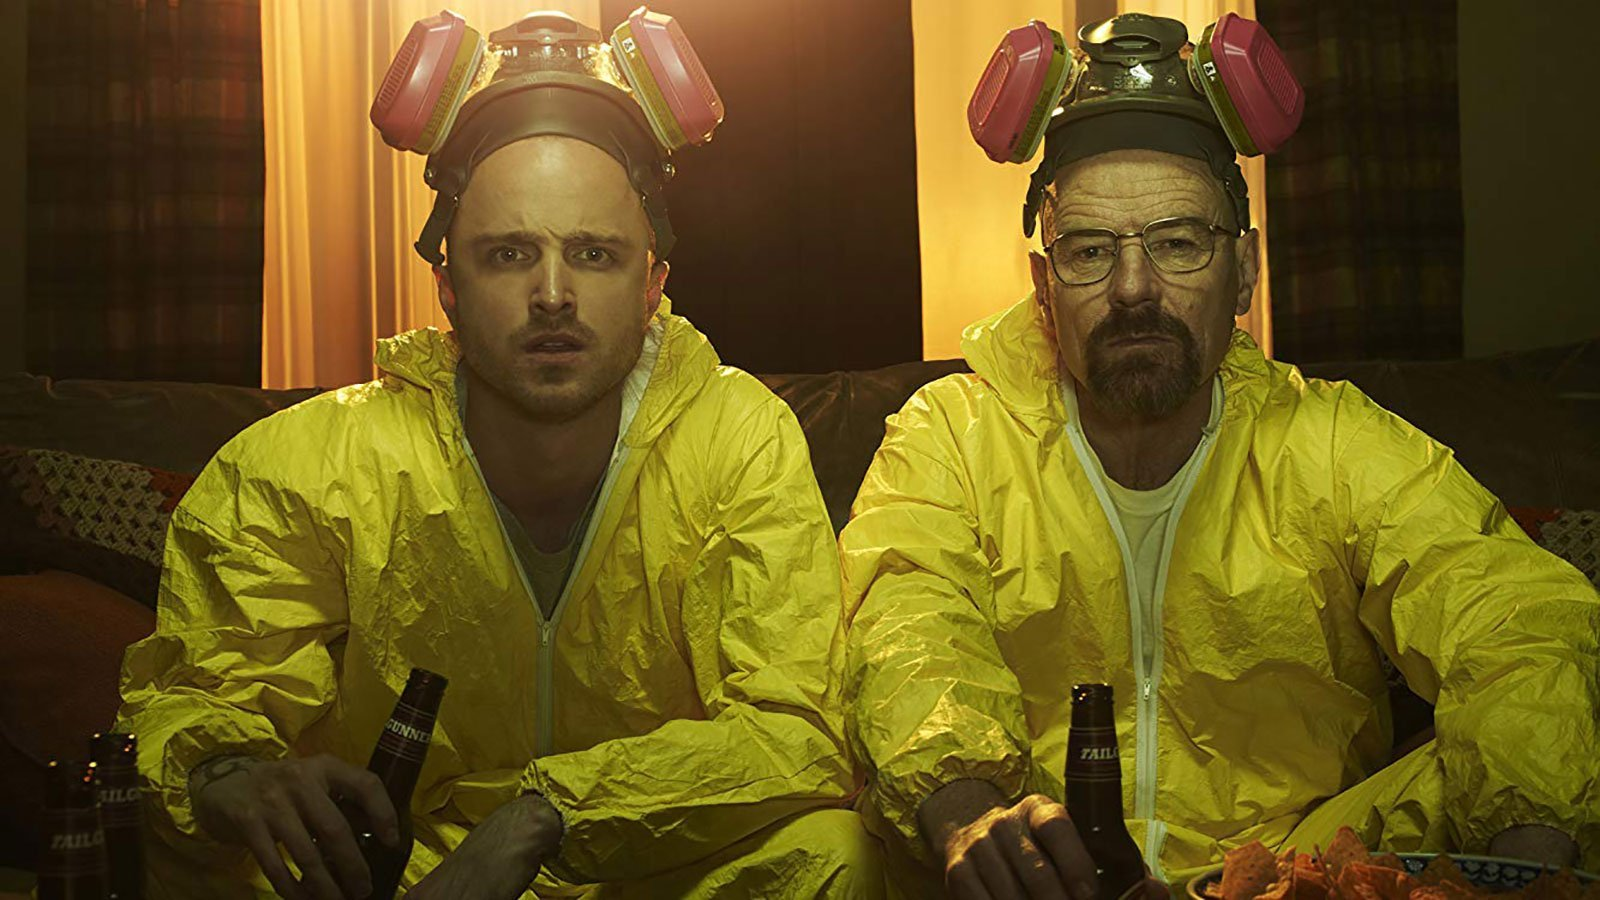 The 'Breaking Bad' movie will be released in October